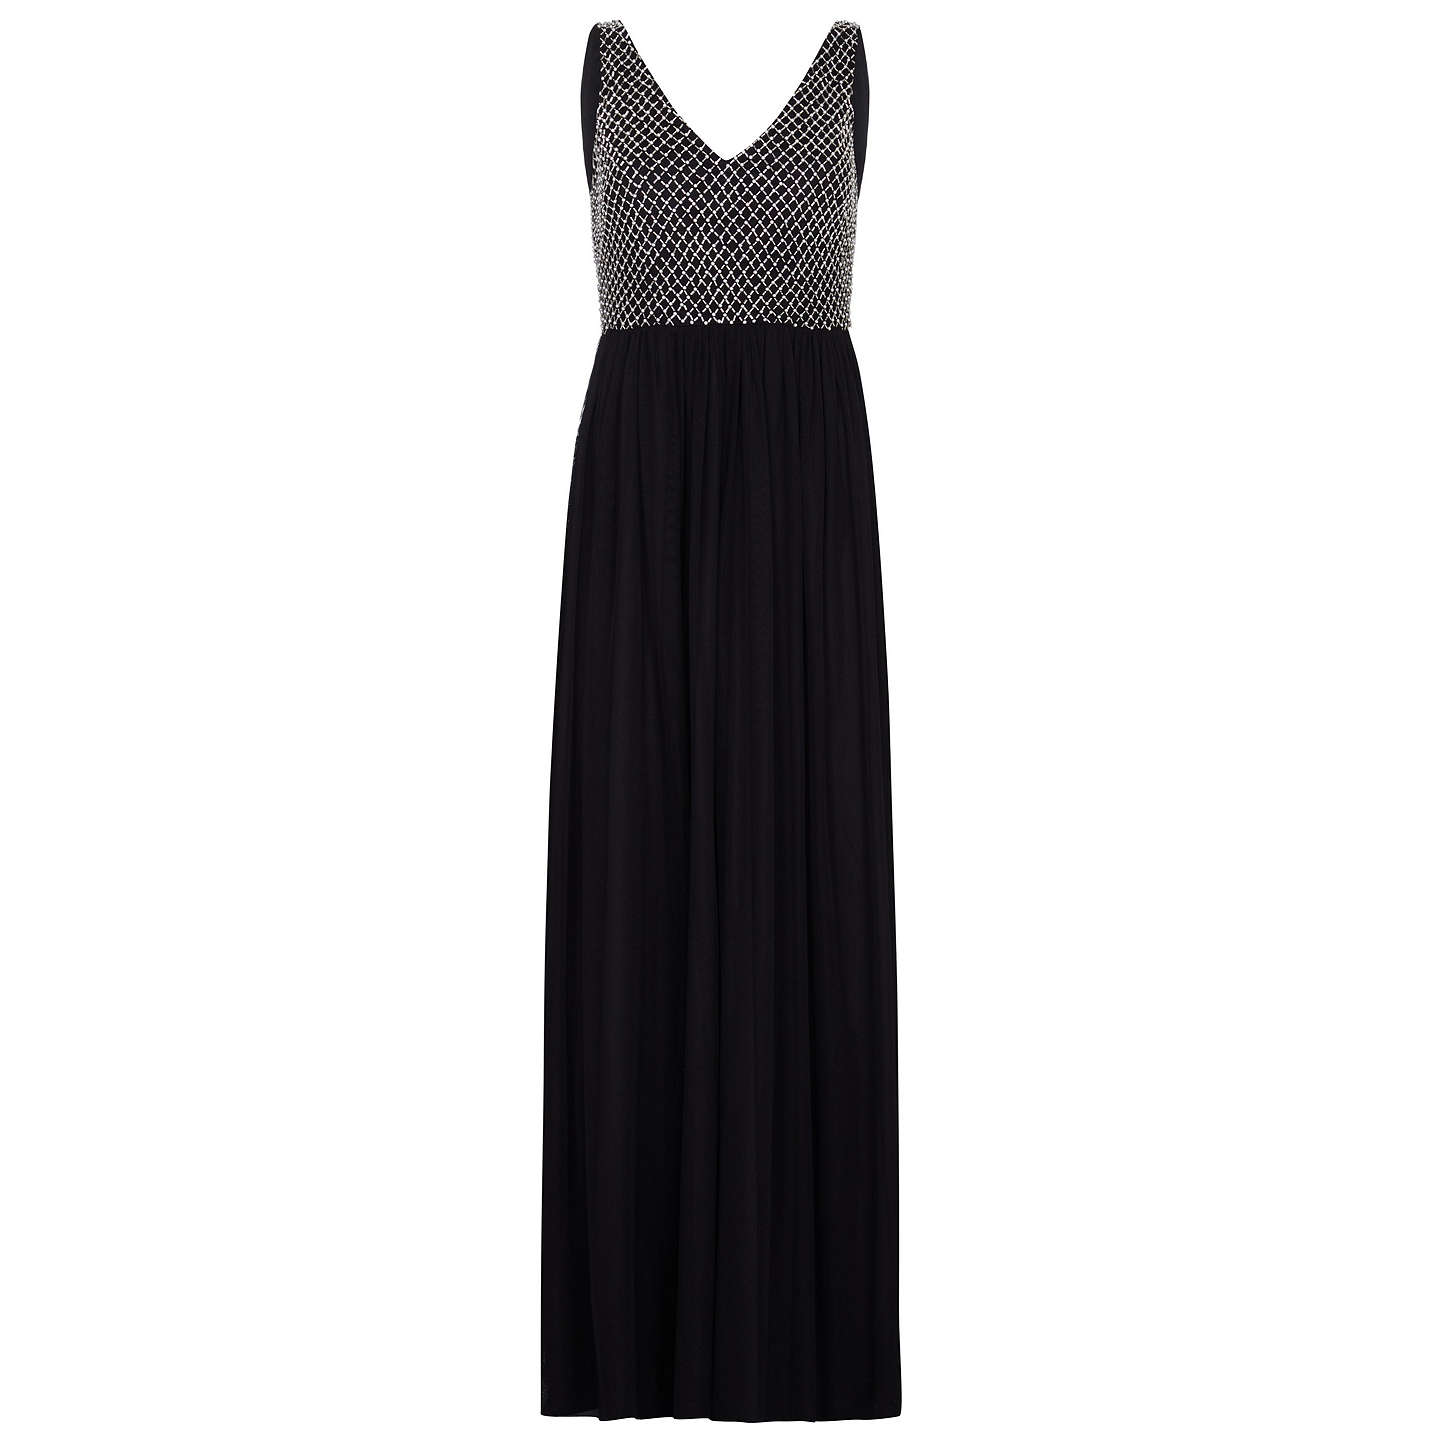 BuyAdrianna Papell Beaded Long Dress, Black/Ivory, 8 Online at johnlewis.com